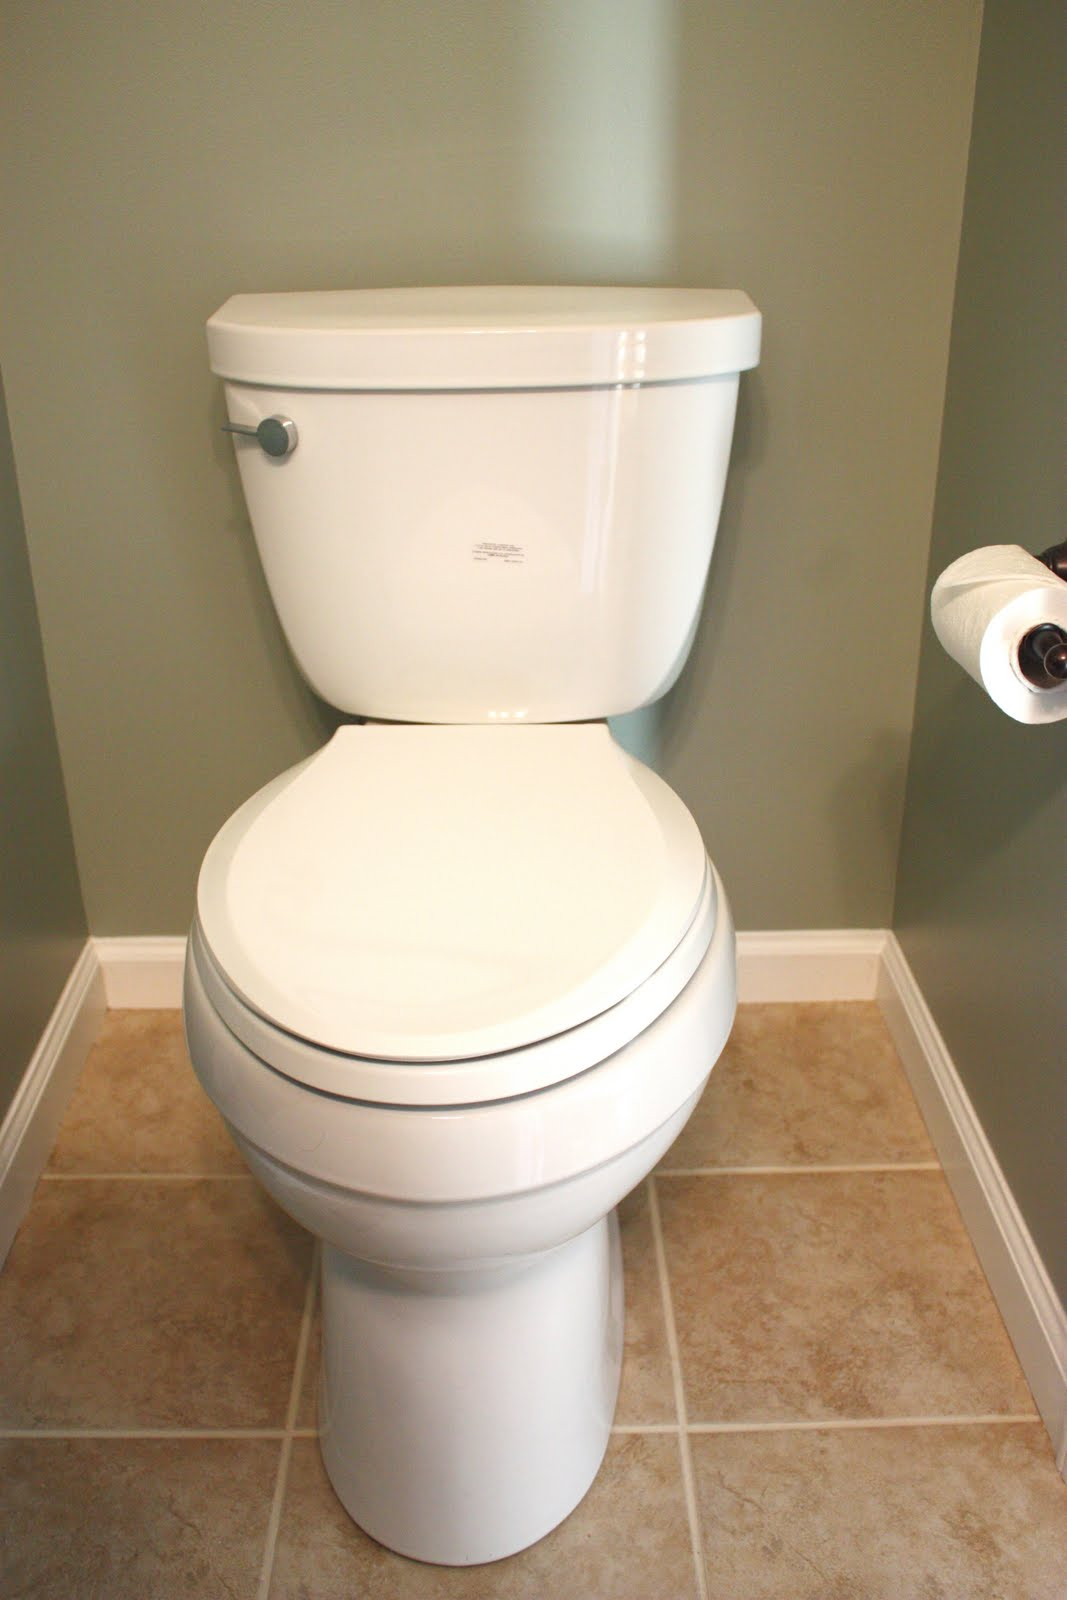 Remodeling? Buy This Toilet!